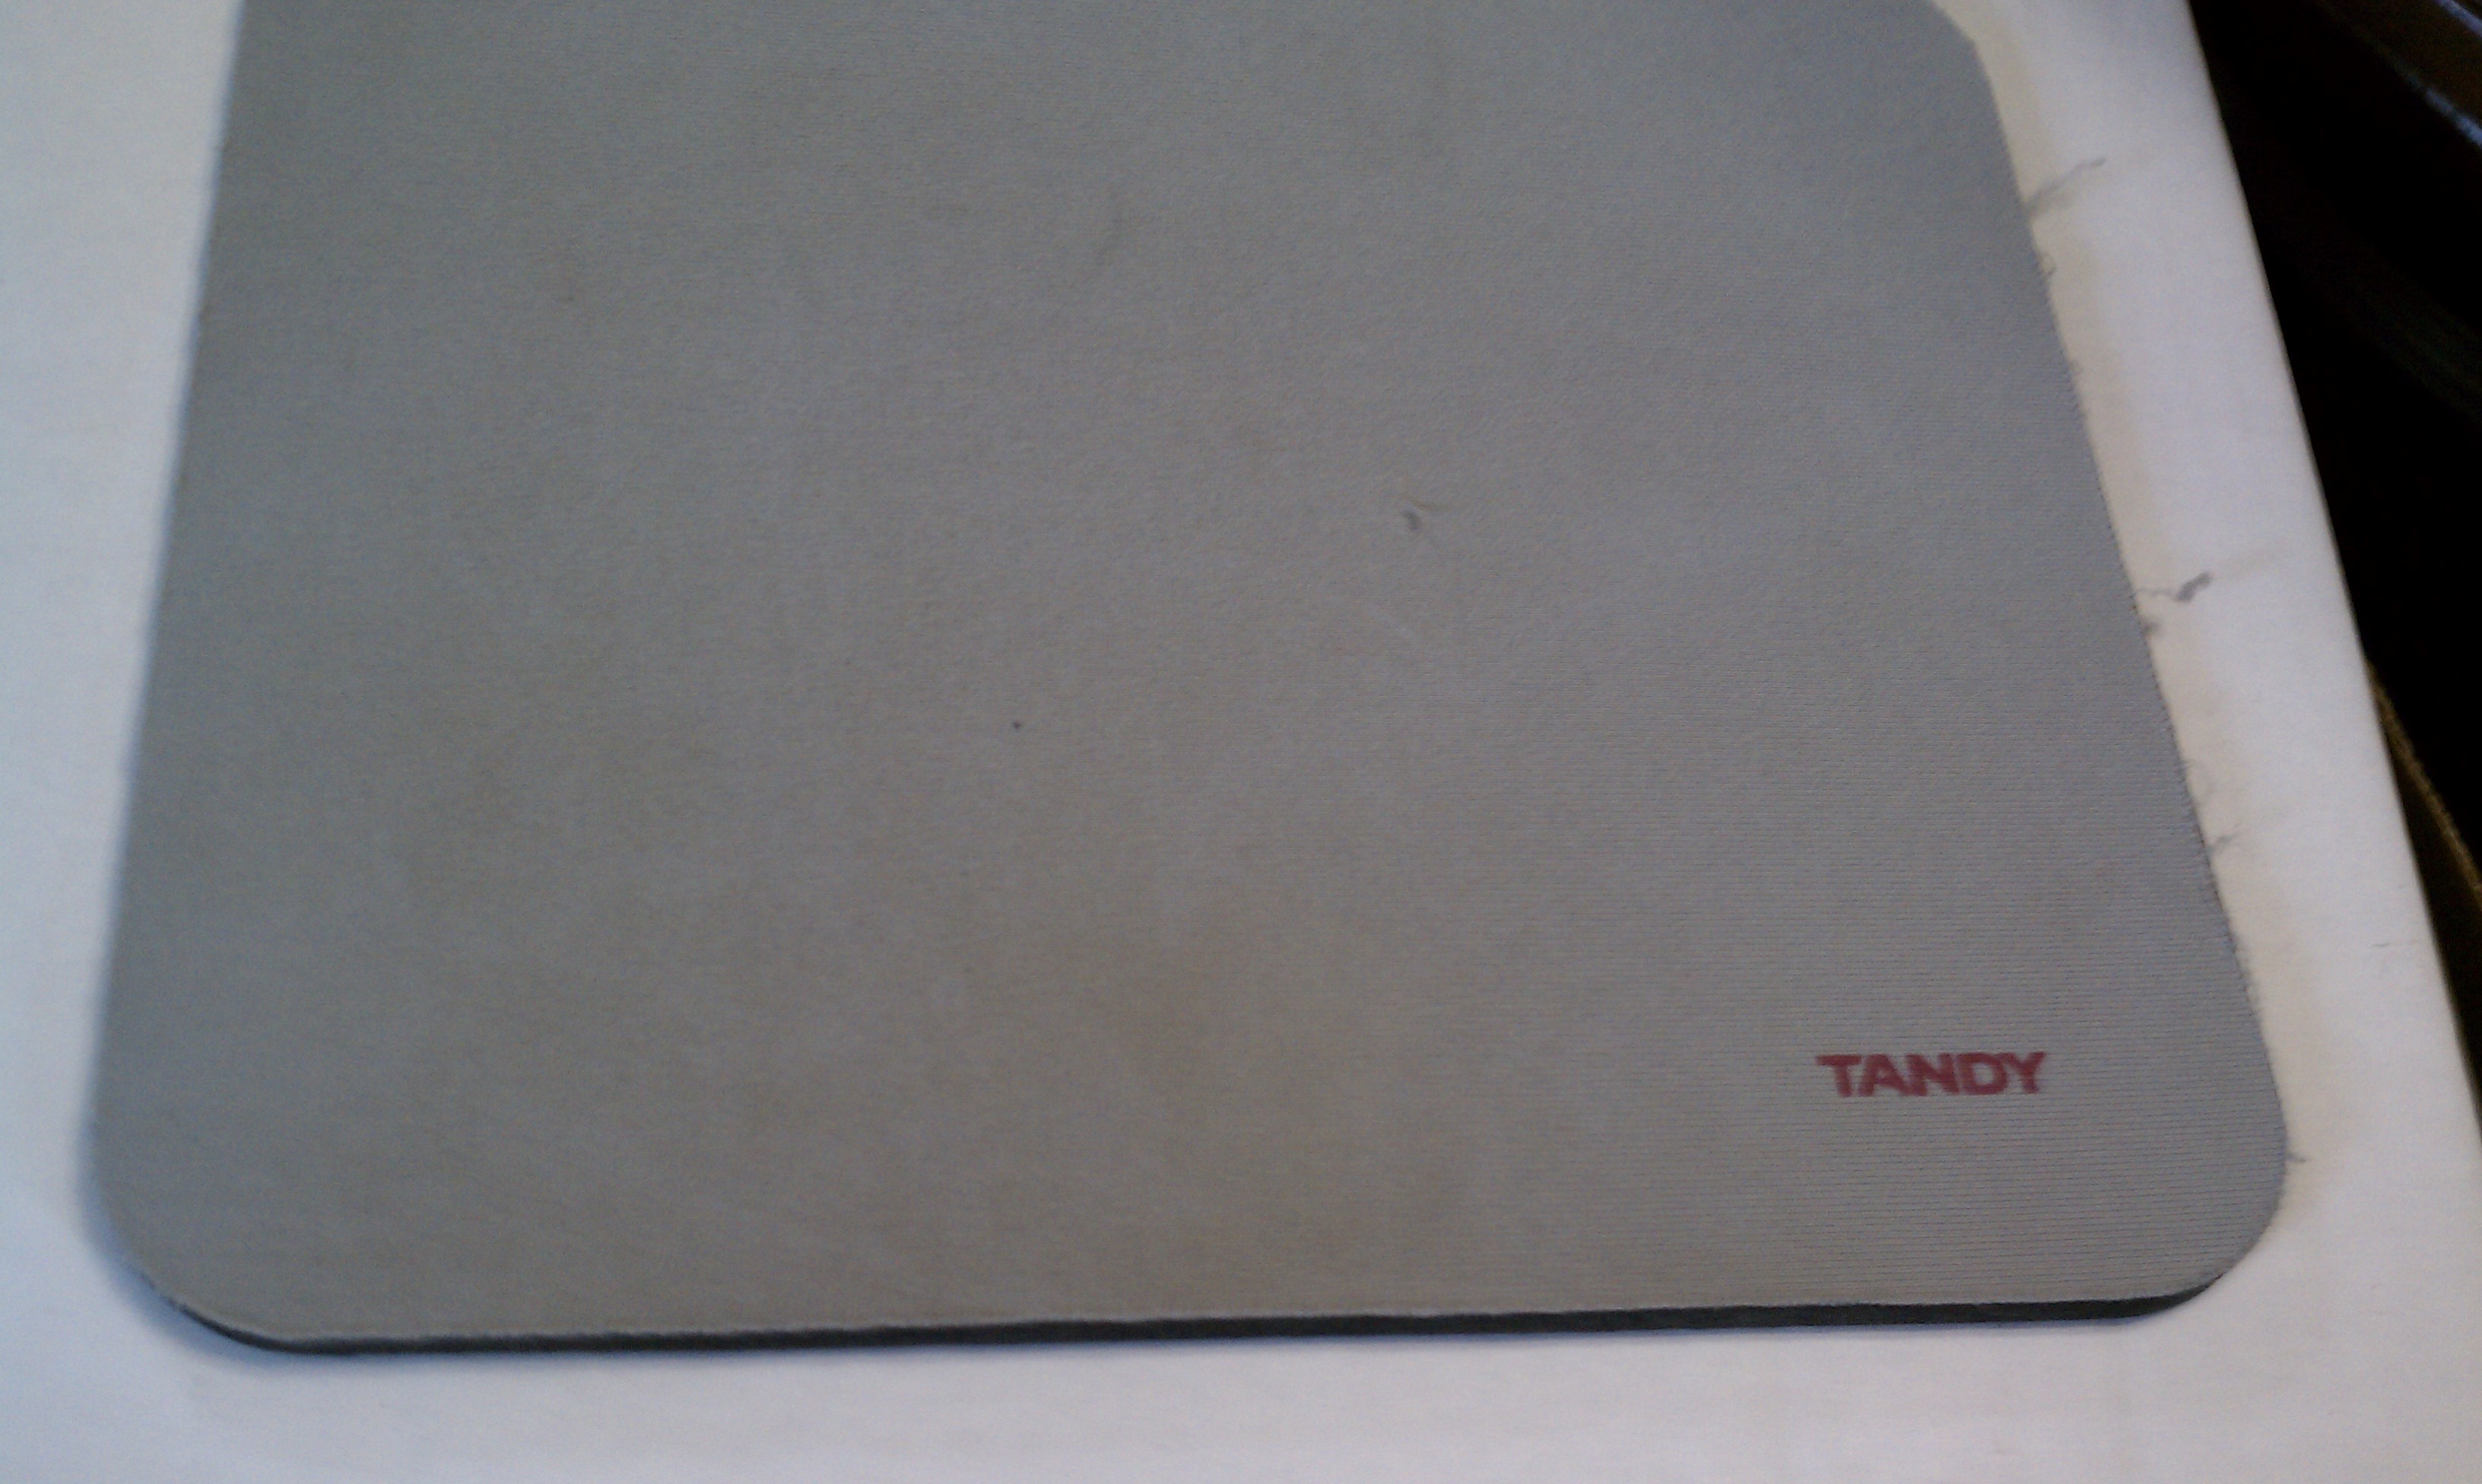 picture of tandy mousepad